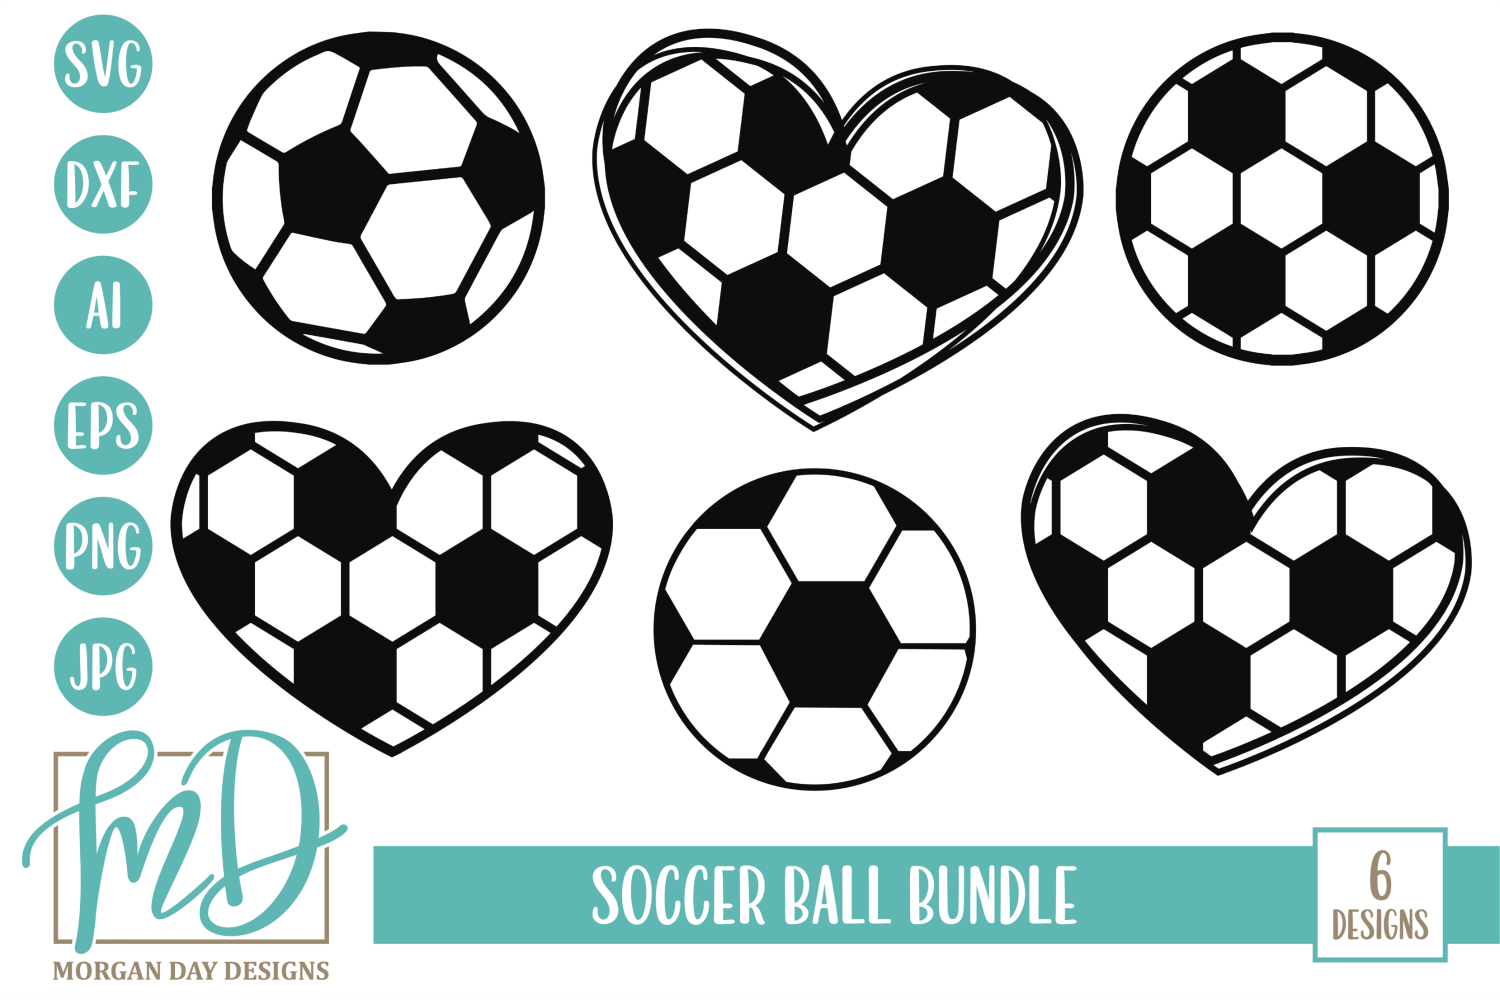 Soccer Ball Bundle SVG, DXF, AI, EPS, PNG, JPEG example image 1